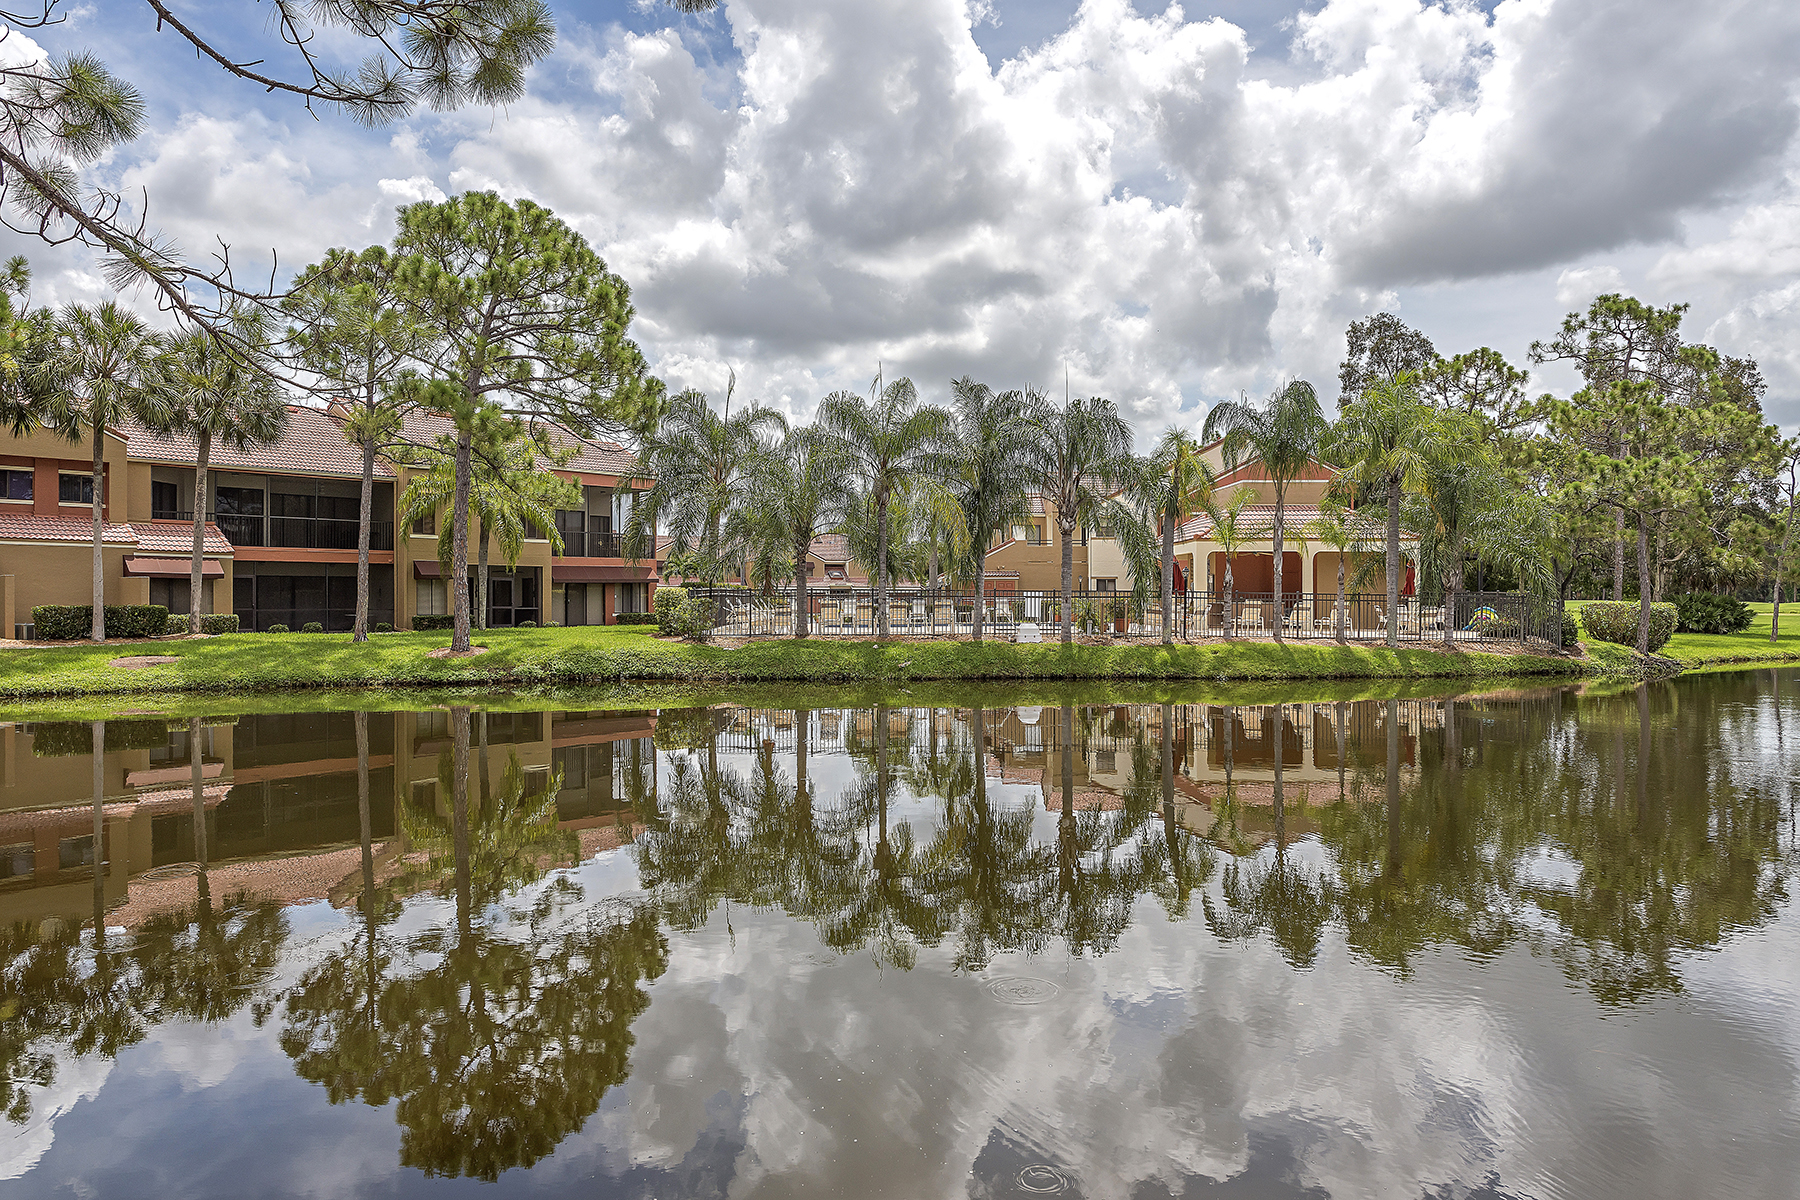 Condominium for Sale at EAGLE RIDGE - PINES 7150 Golden Eagle Ct 221, Fort Myers, Florida 33912 United States